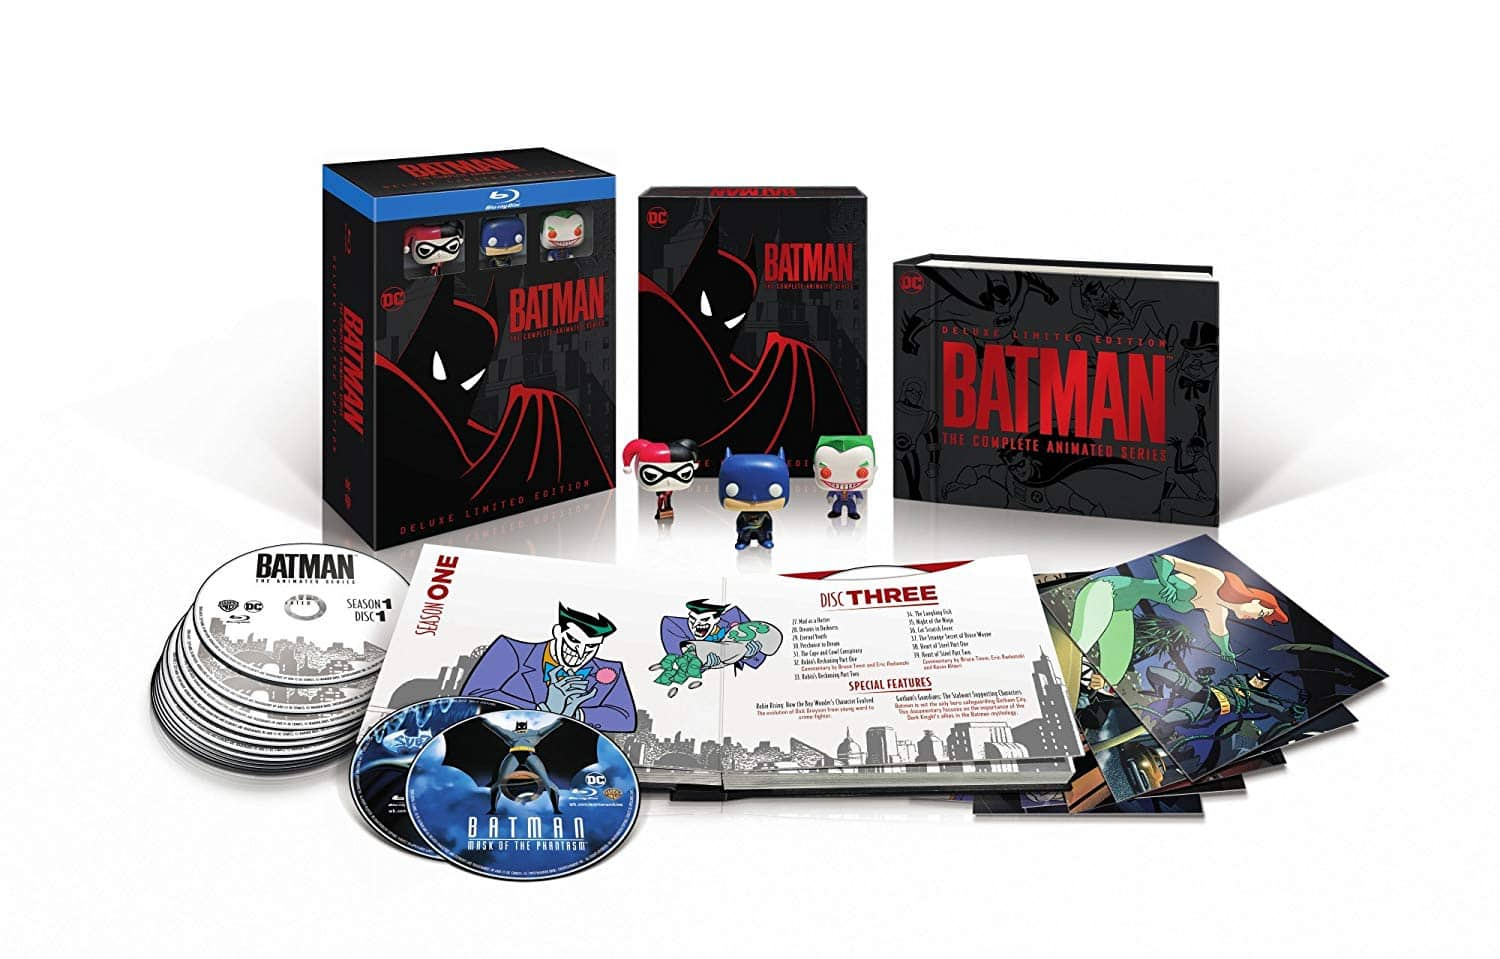 Batman: The Complete Animated Series Pre-Order (Blu-ray Deluxe Limited Edition) $87.53